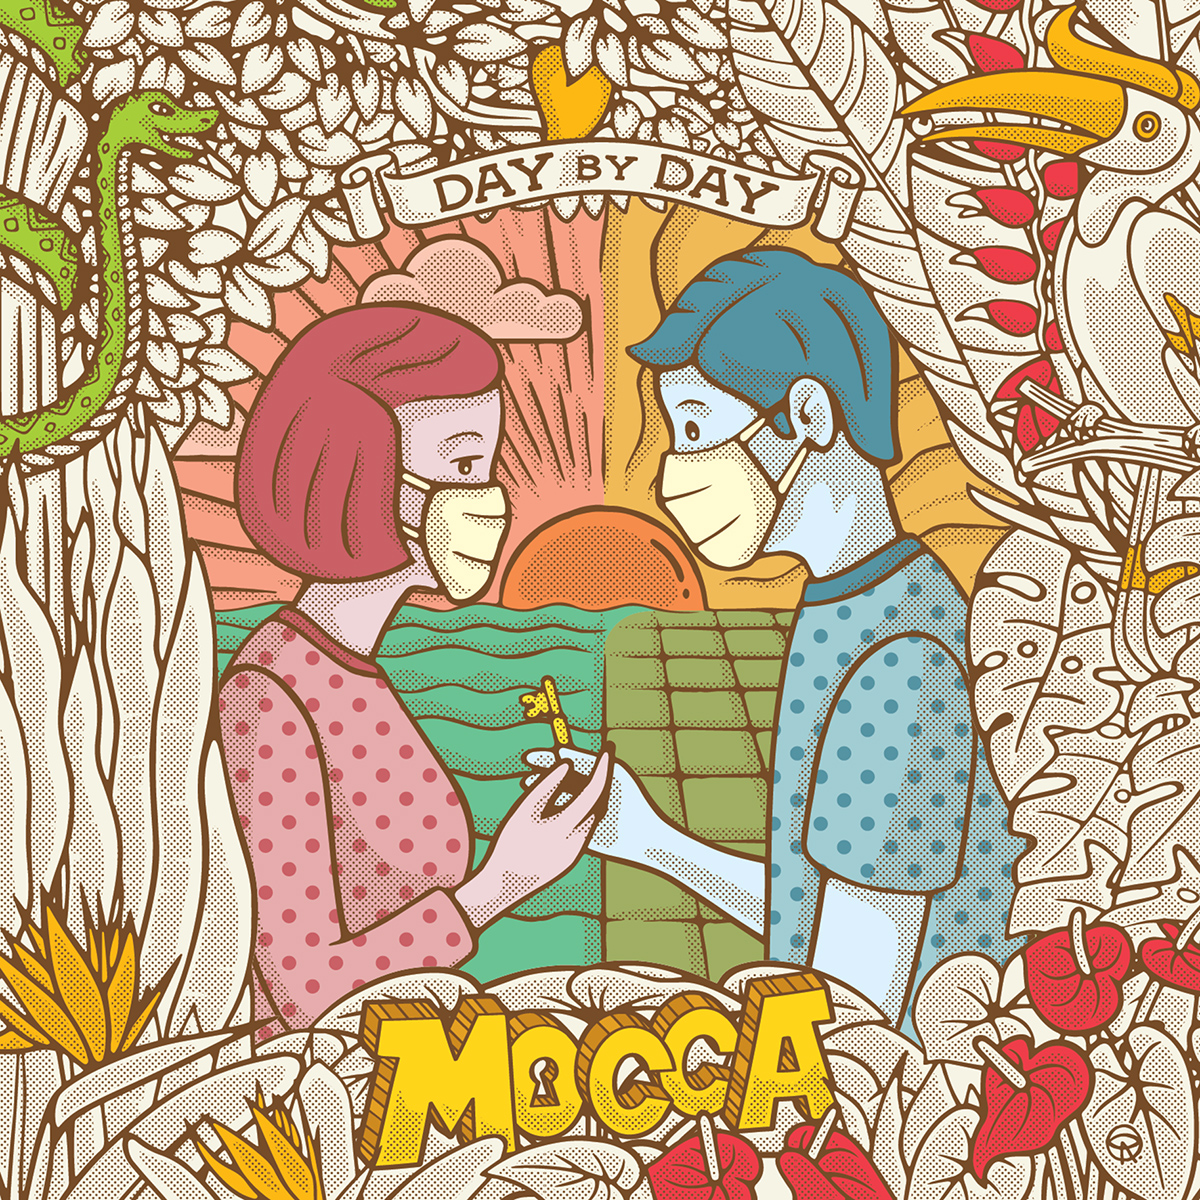 MOCCA – Day By Day